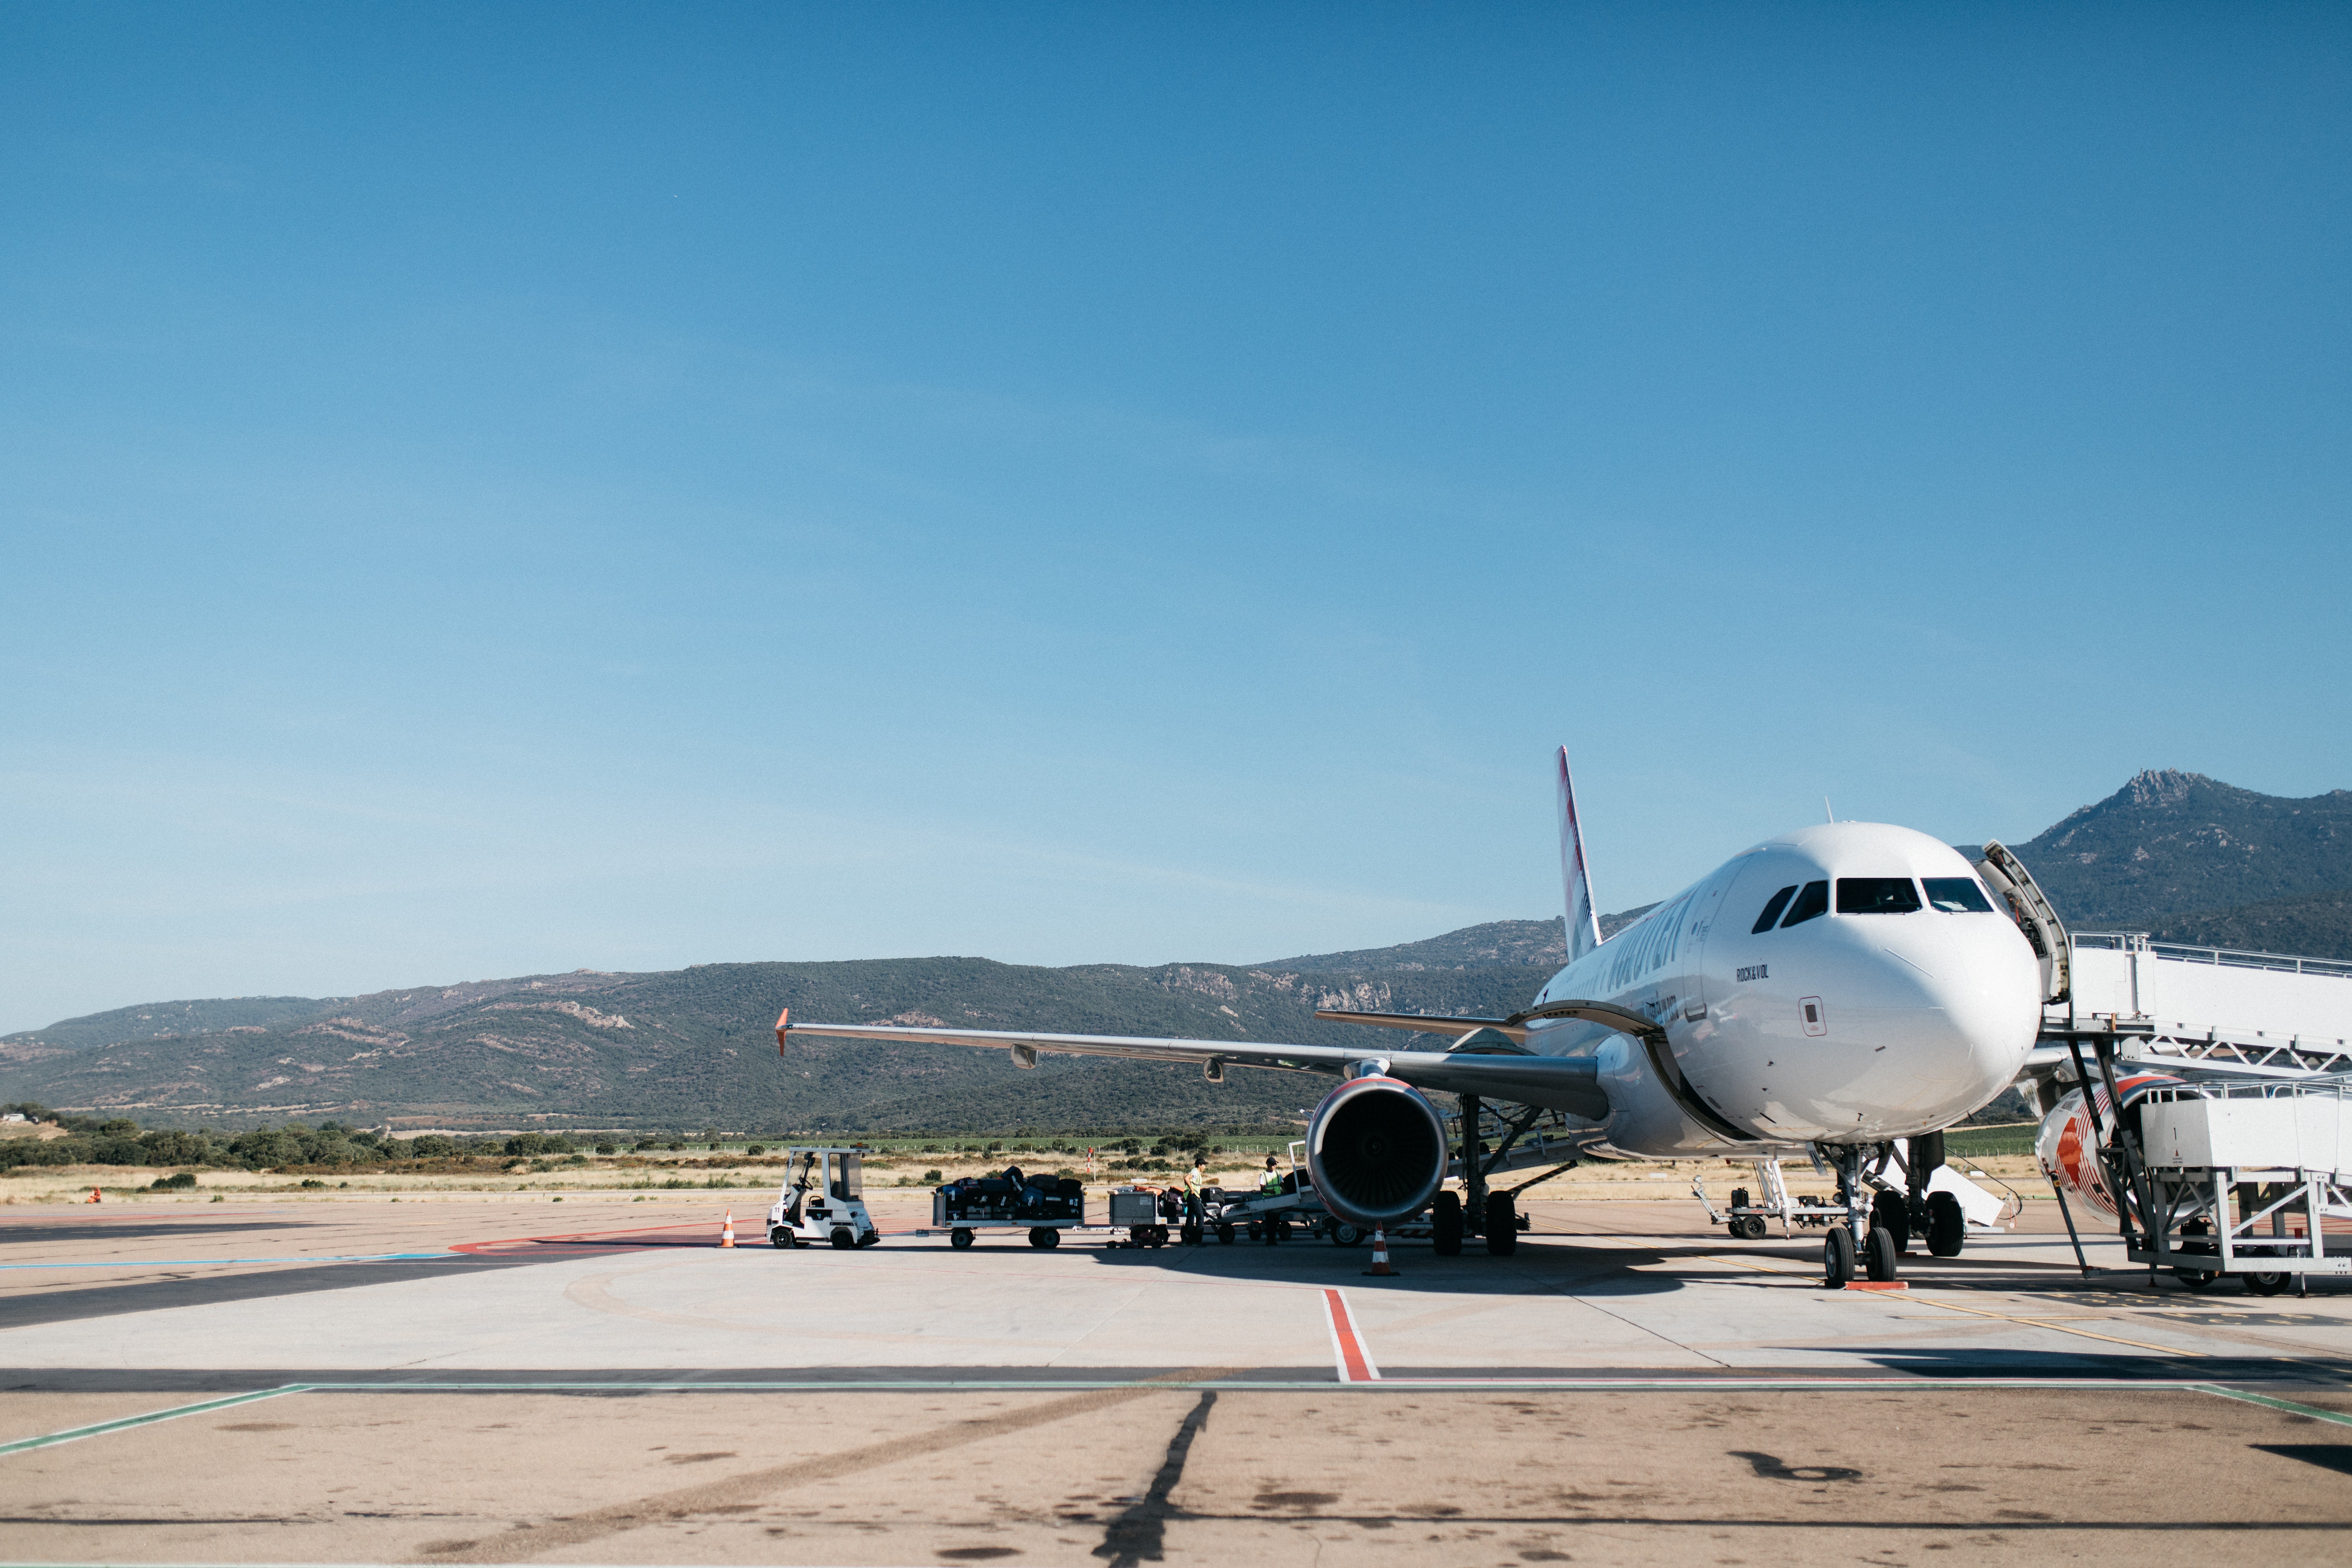 A plane on the airfield on a sunny day in Figari Sud-Corse Airport